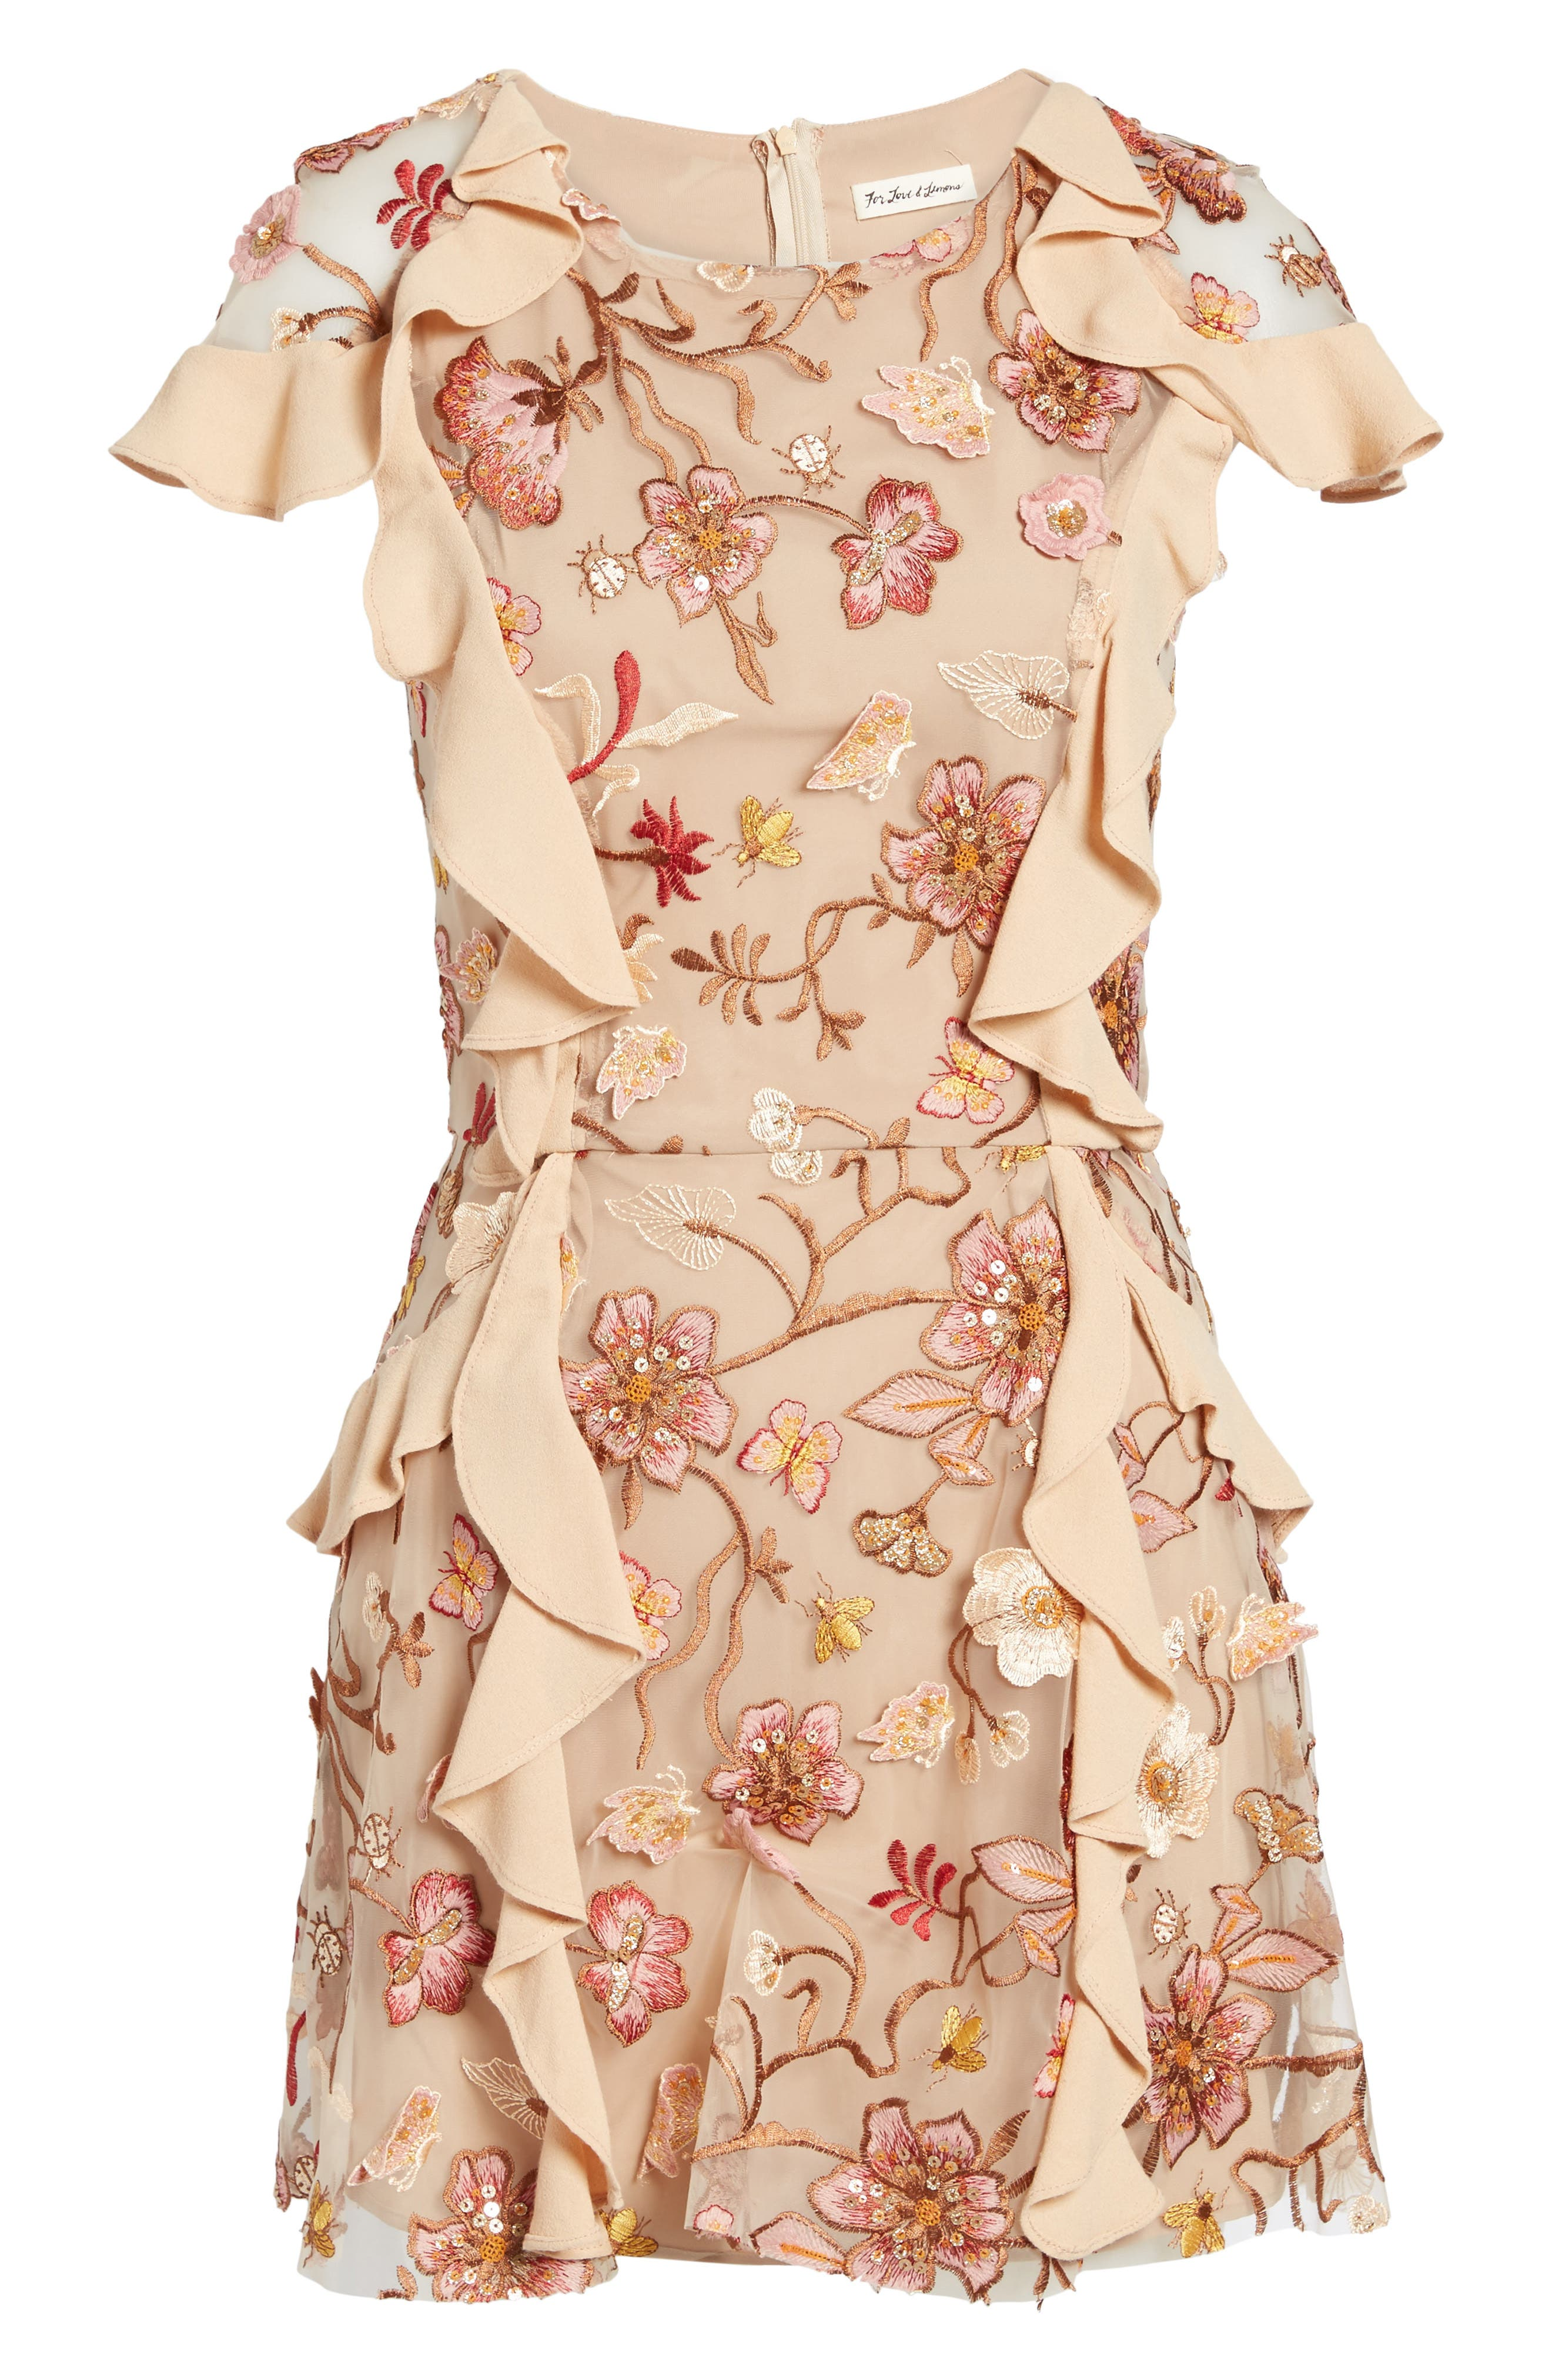 Botanical Embroidered Ruffle Minidress,                             Alternate thumbnail 6, color,                             Nude Floral